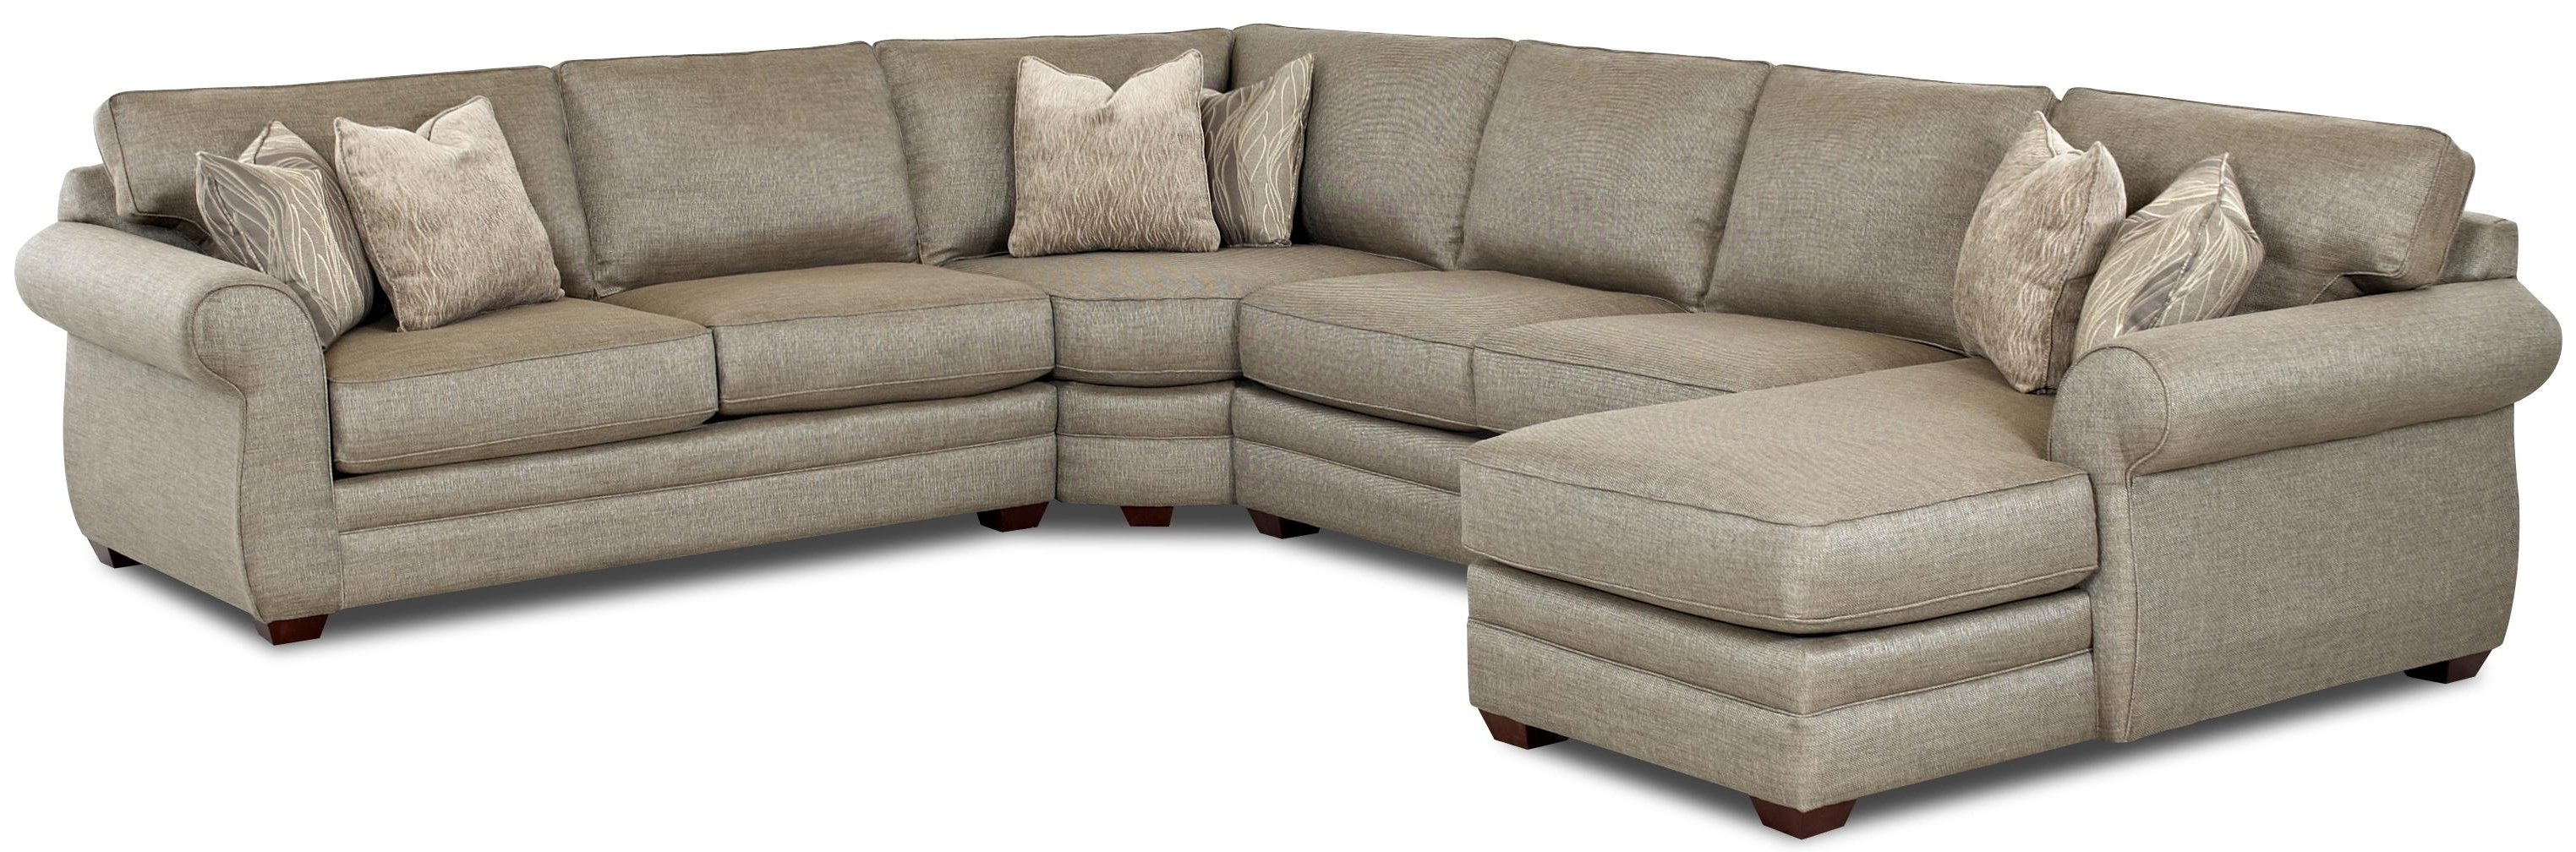 2019 Klaussner Clanton Transitional Sectional Sofa With Left Chaise And Intended For Sleeper Sectional Sofas (View 4 of 20)